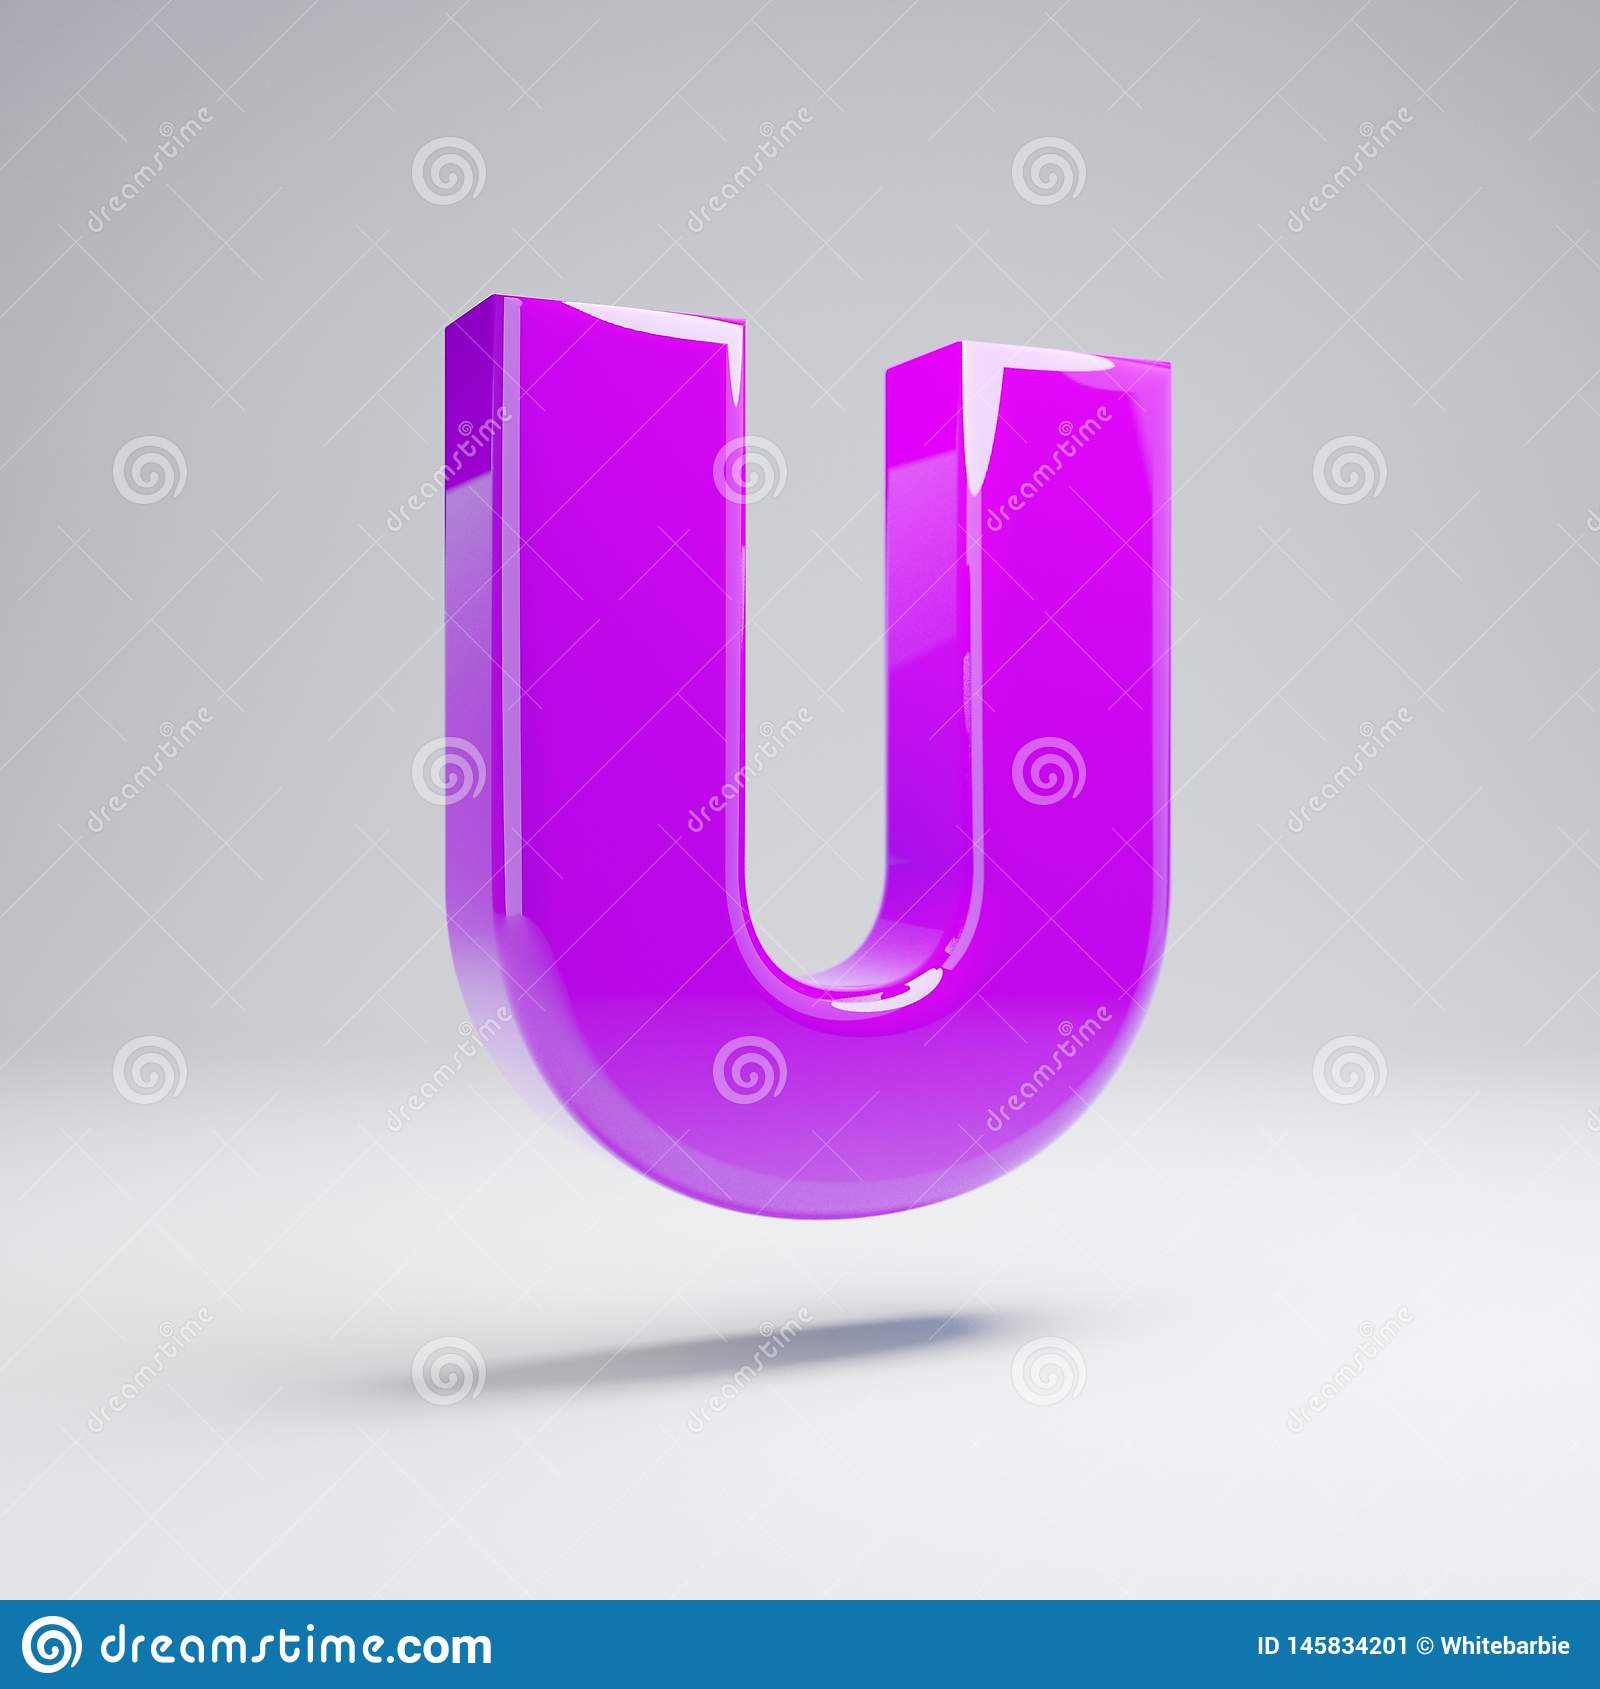 Volumetric glossy violet uppercase letter U isolated on white background